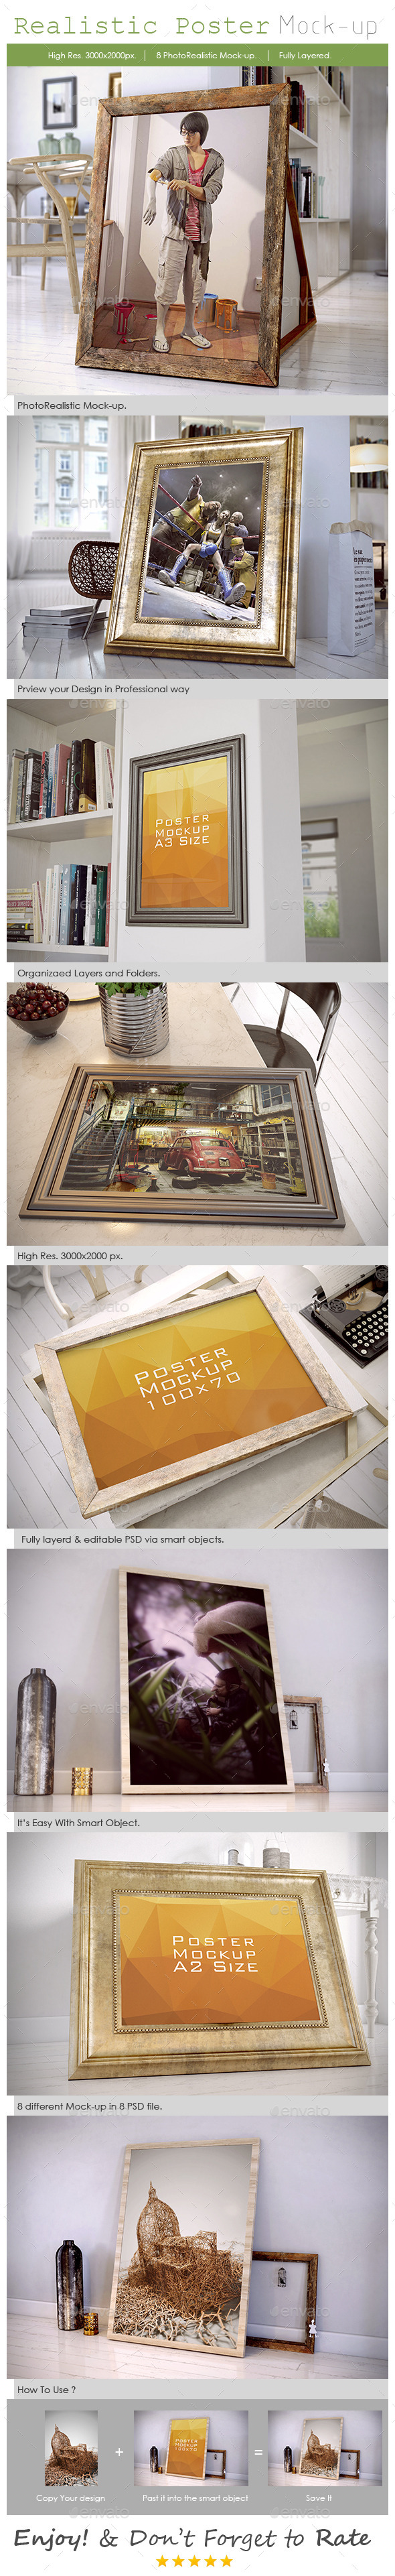 Realistic Poster Mockup - Posters Print